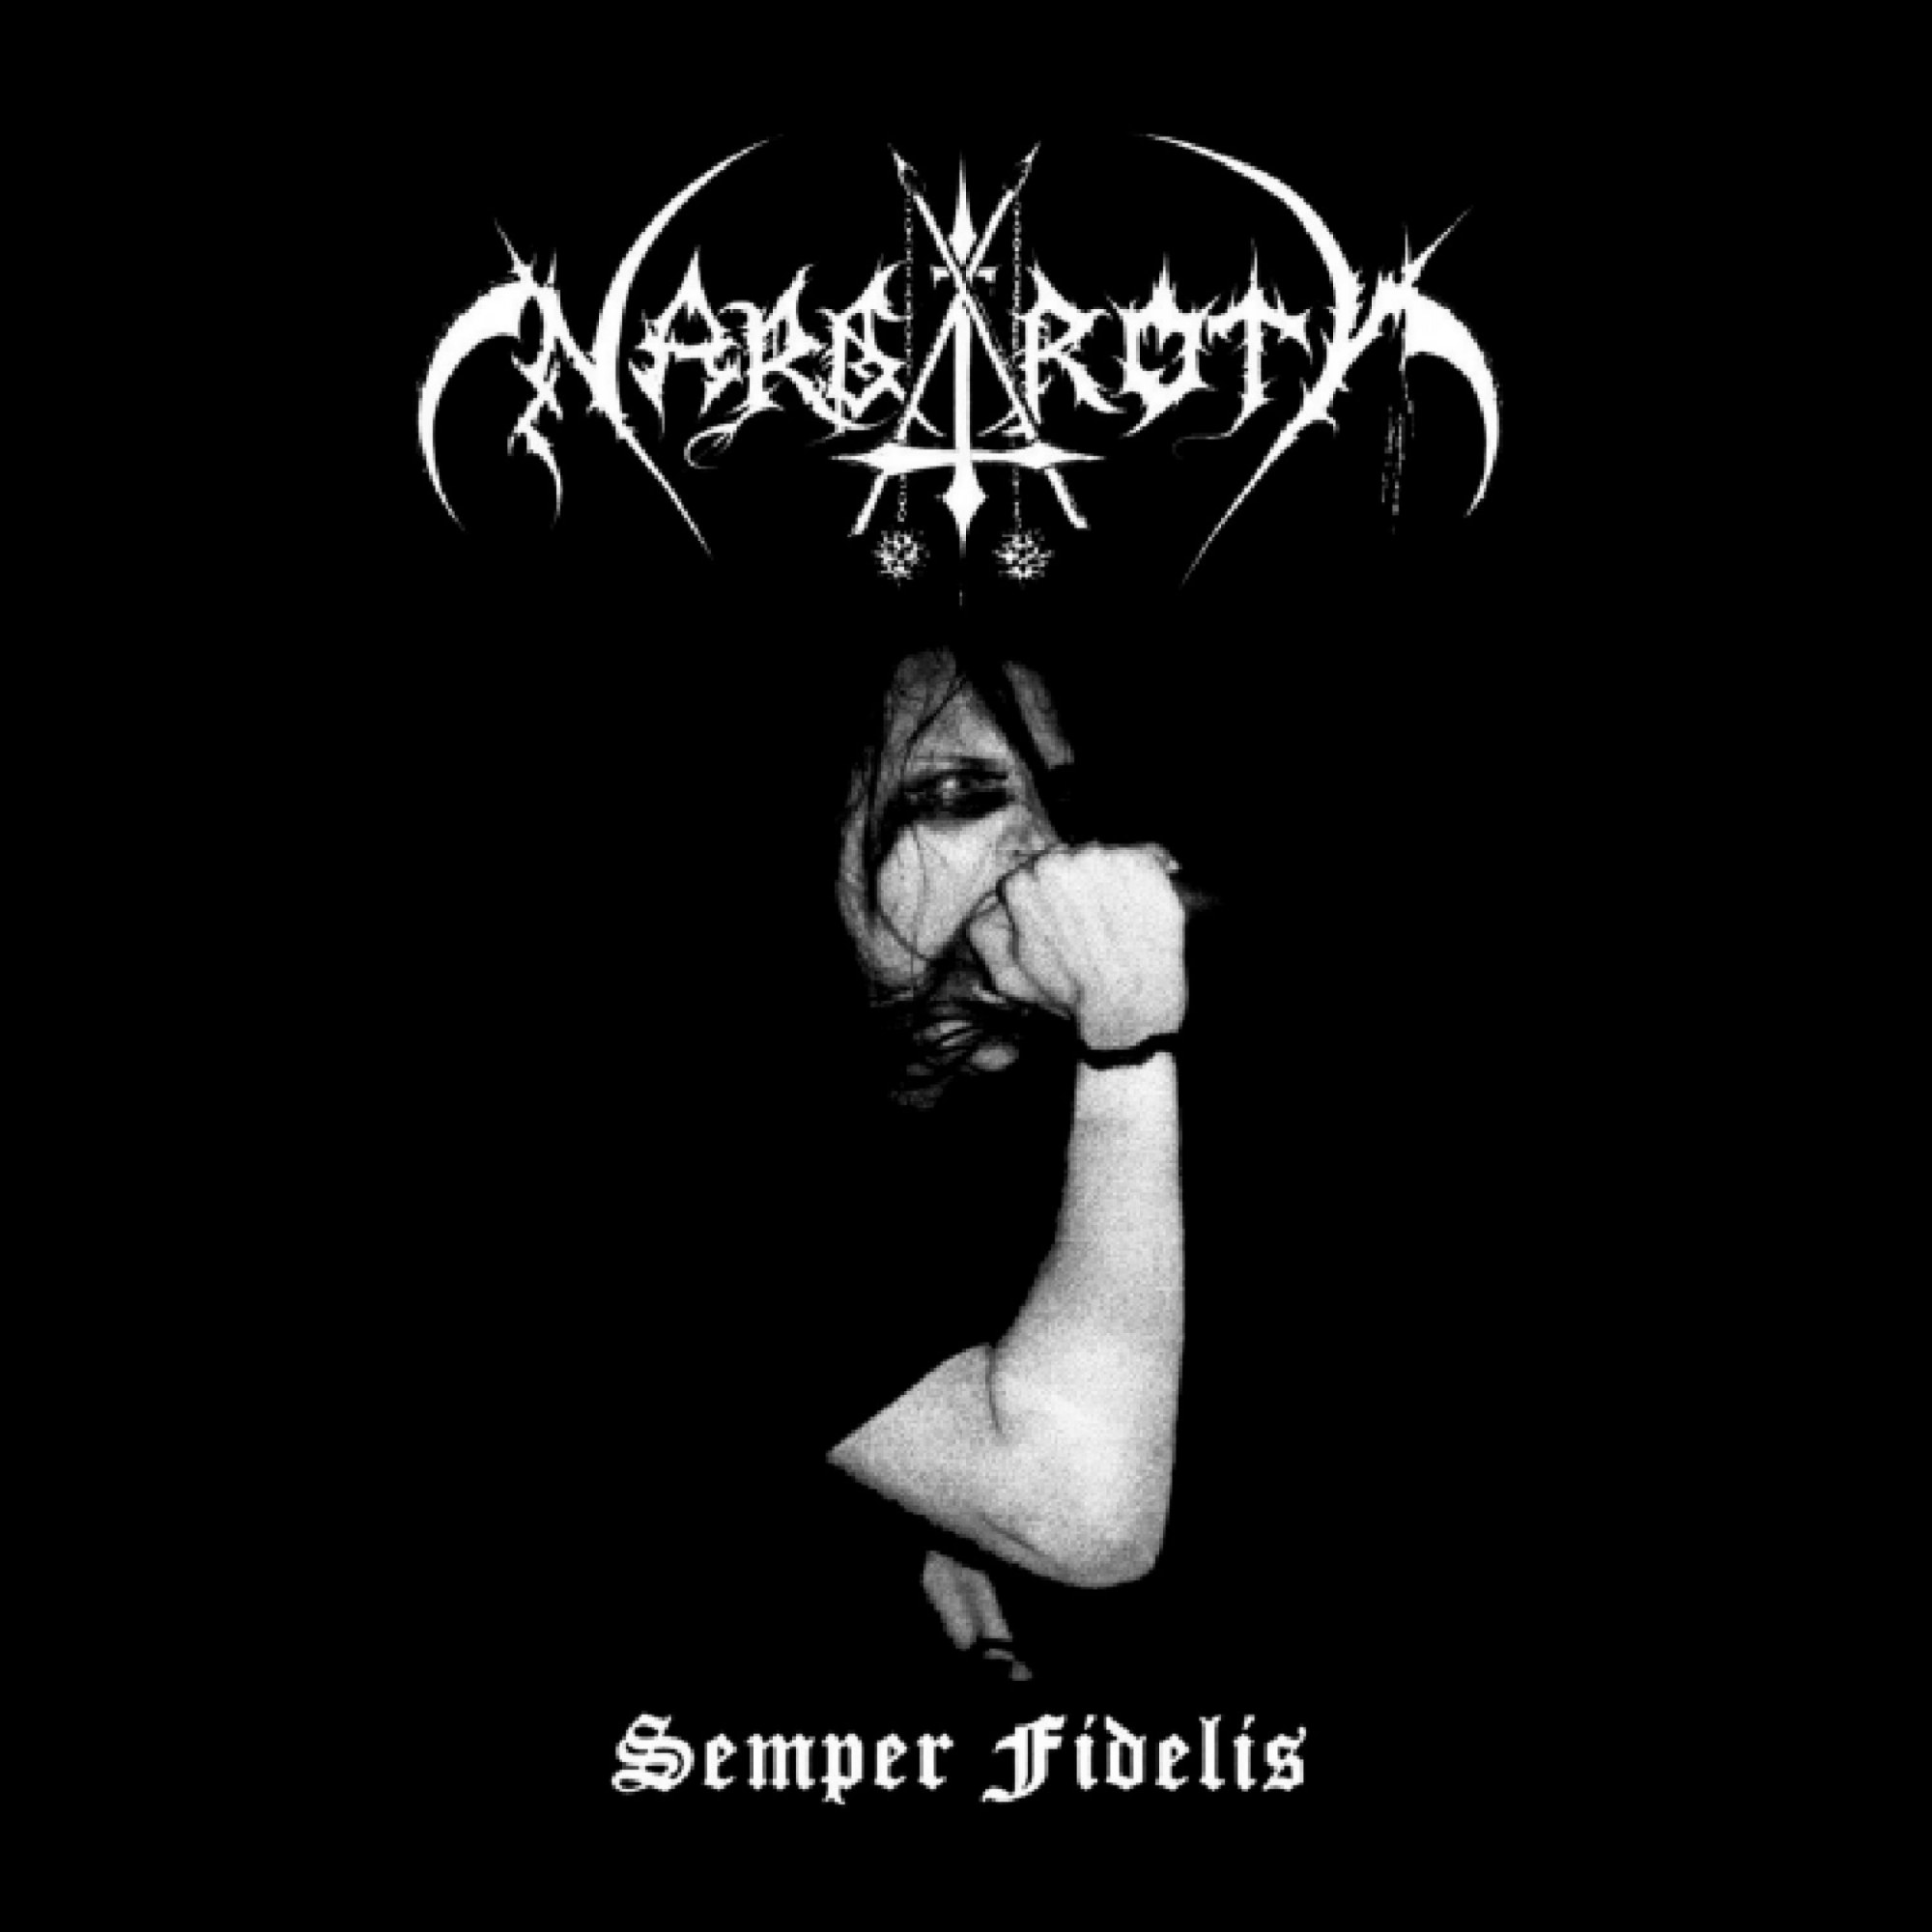 Review for Nargaroth - Semper Fidelis